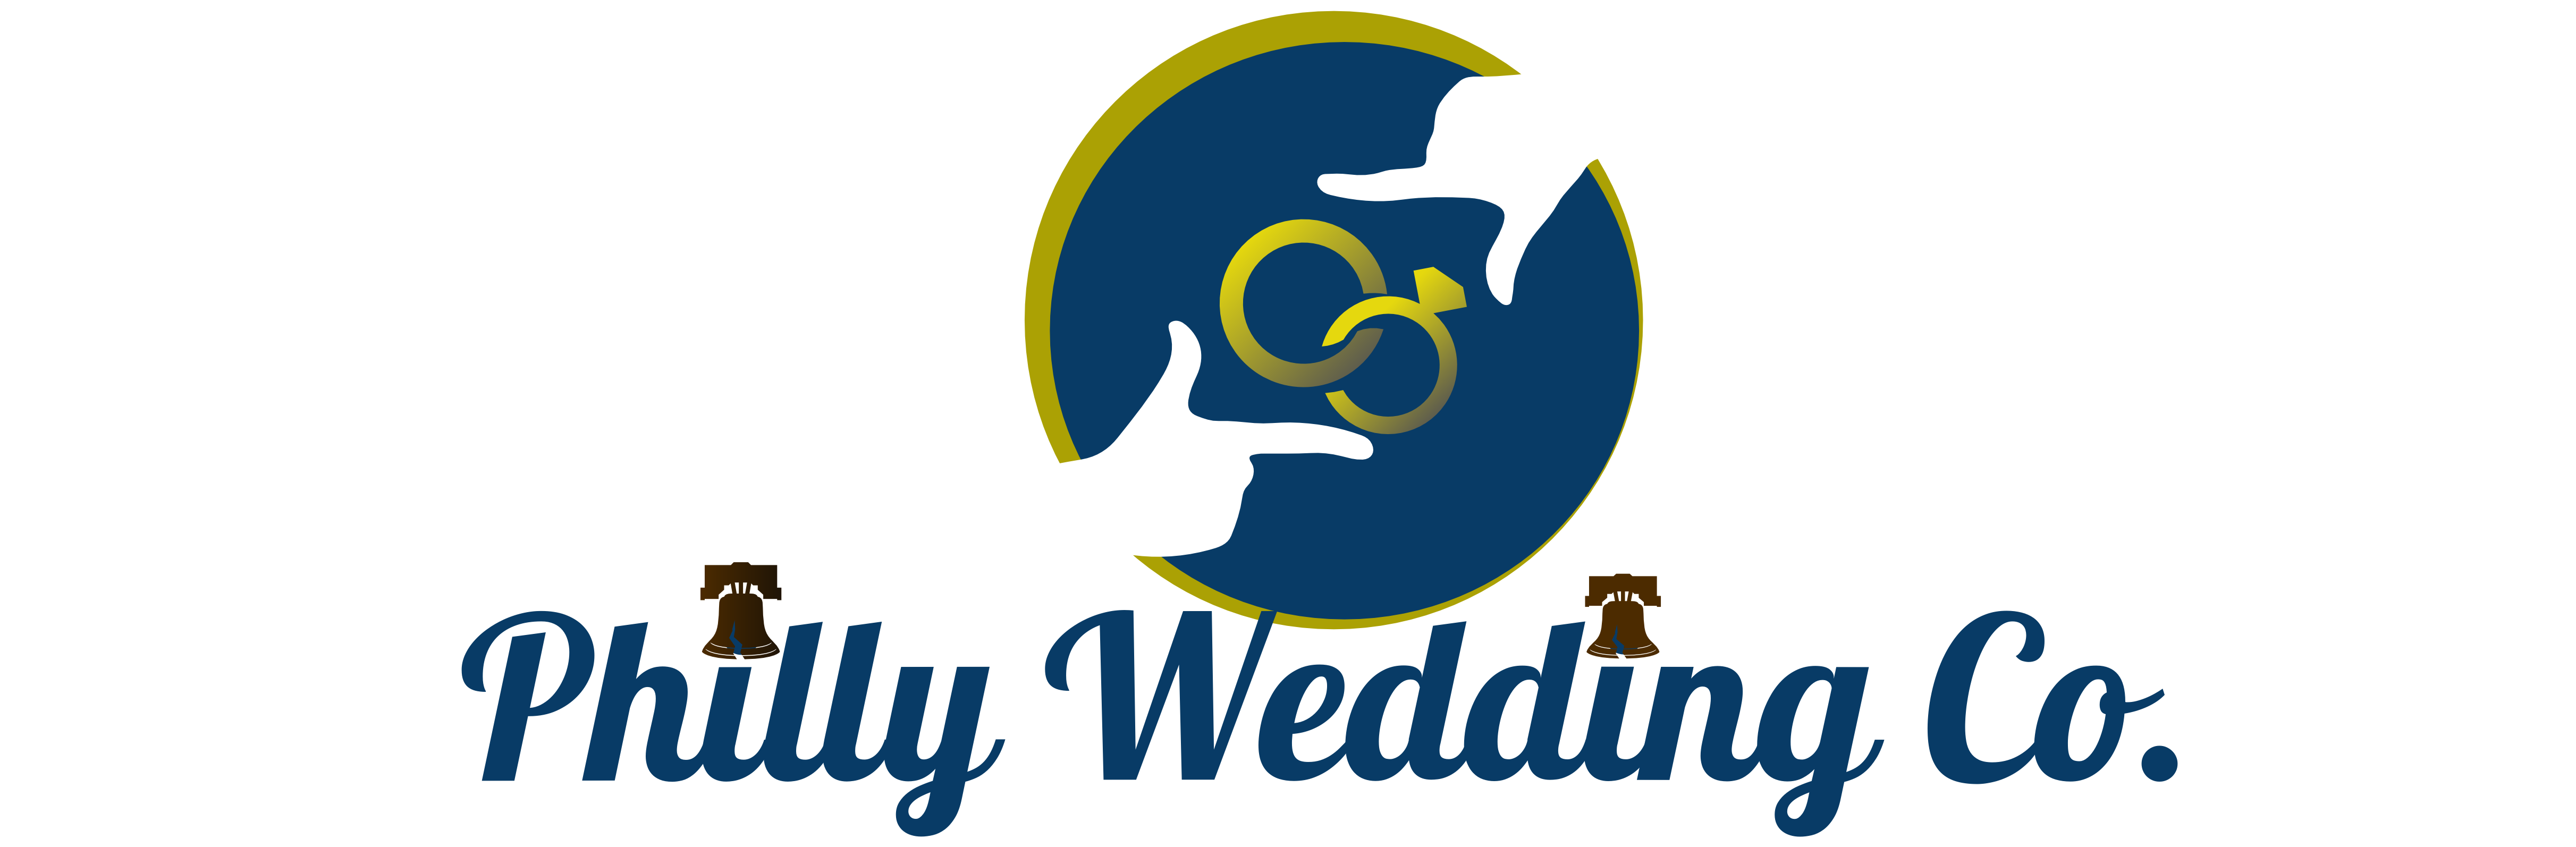 Philly Wedding Co. Wedding Ceremony Officiants